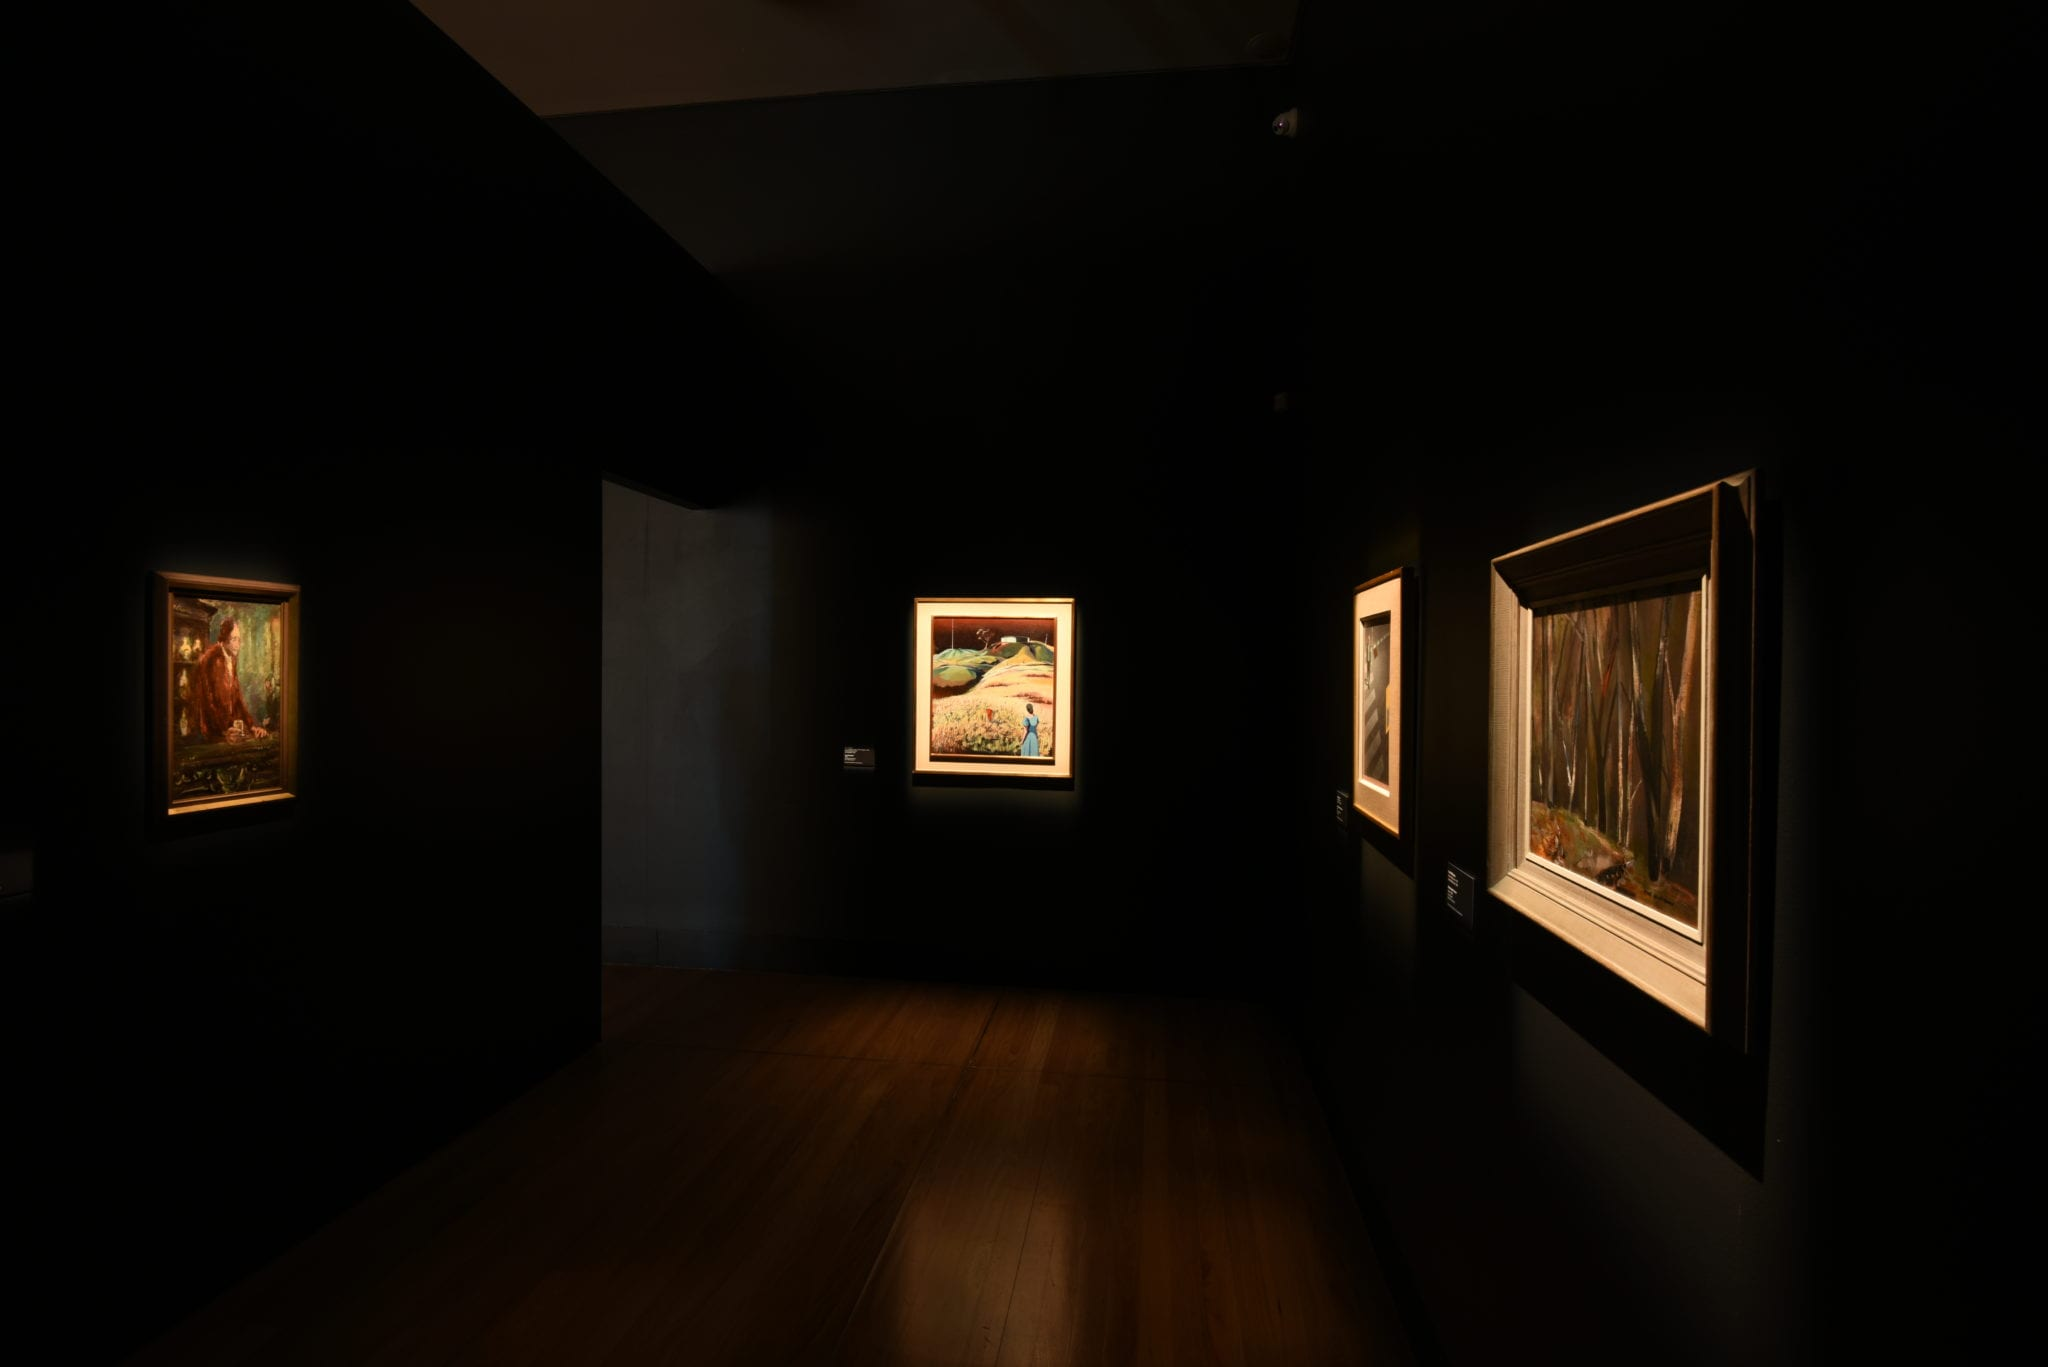 Exhibition documentation, 'Morning, Noon and Night: Selected works from the Cbus Collection of Australian Art', 13 July – 13 October 2019, Gallery 1 & 2, Latrobe Regional Gallery. Photograph: Latrobe Regional Gallery.